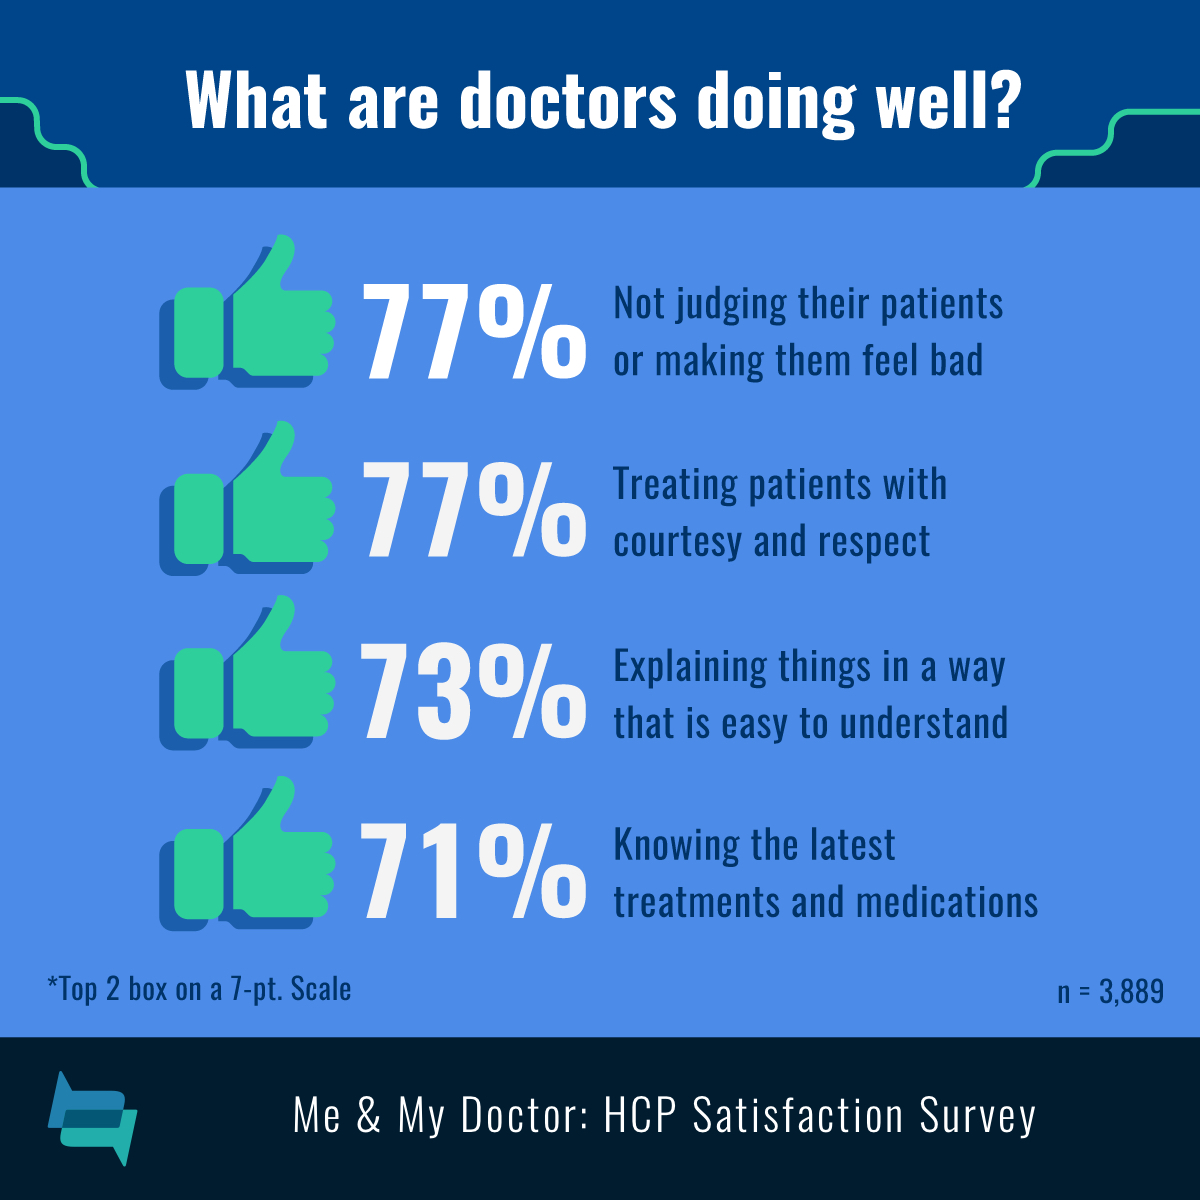 Doctors are not judging patients (77%), treating them with respect (77%), explaining well (73%), and knowing the latest treatments (71%).